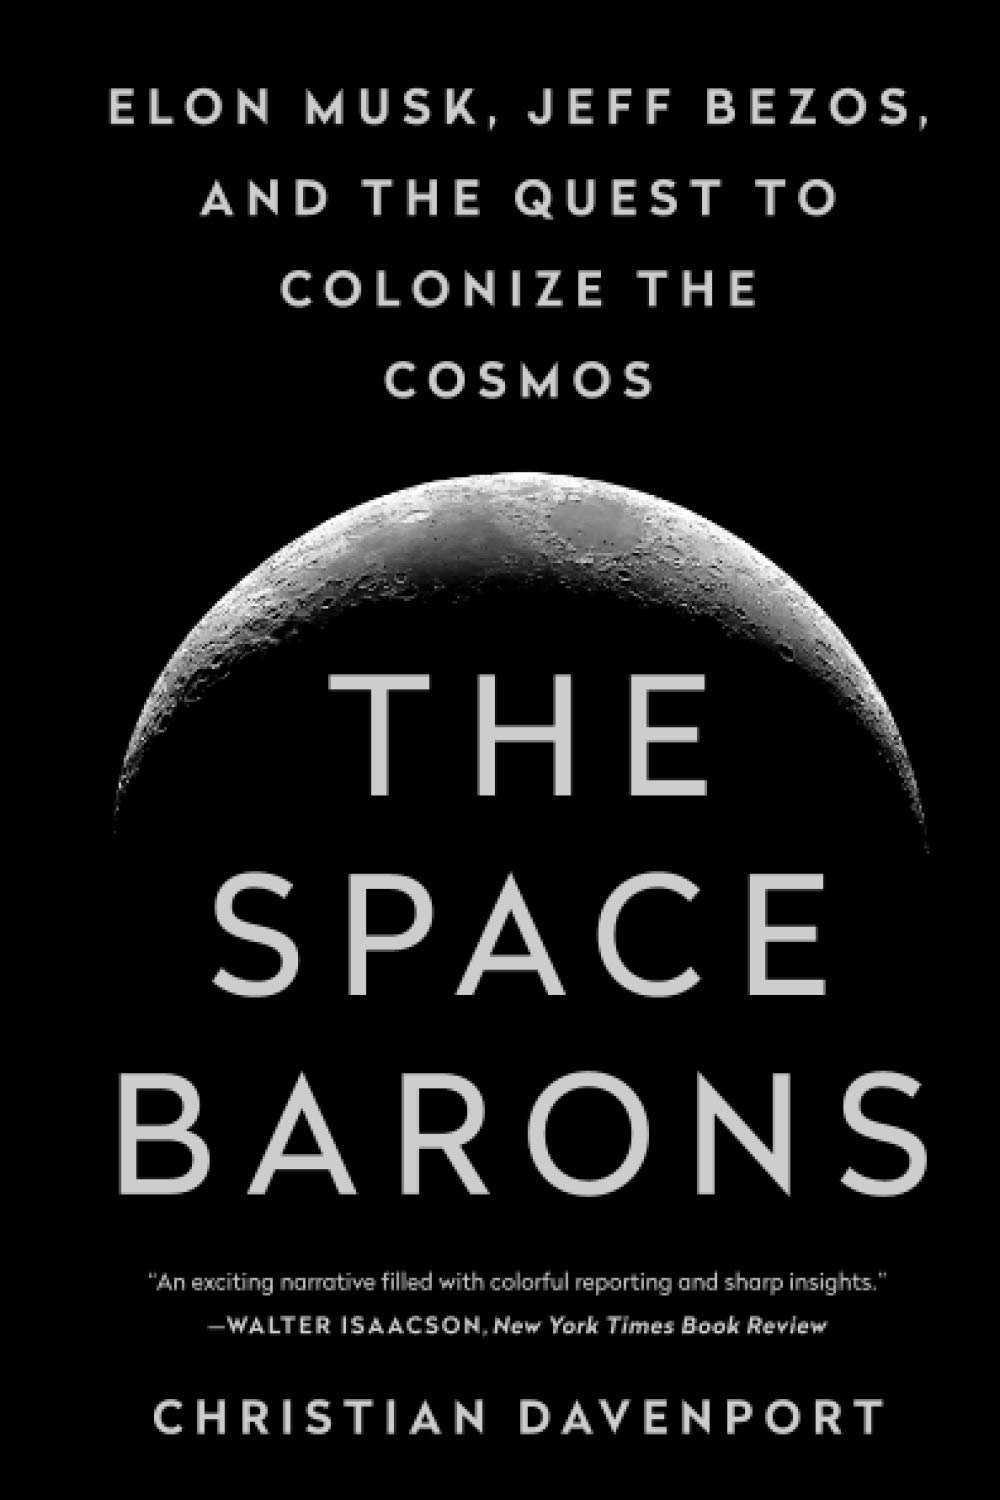 Image OfThe Space Barons: Elon Musk, Jeff Bezos, And The Quest To Colonize The Cosmos